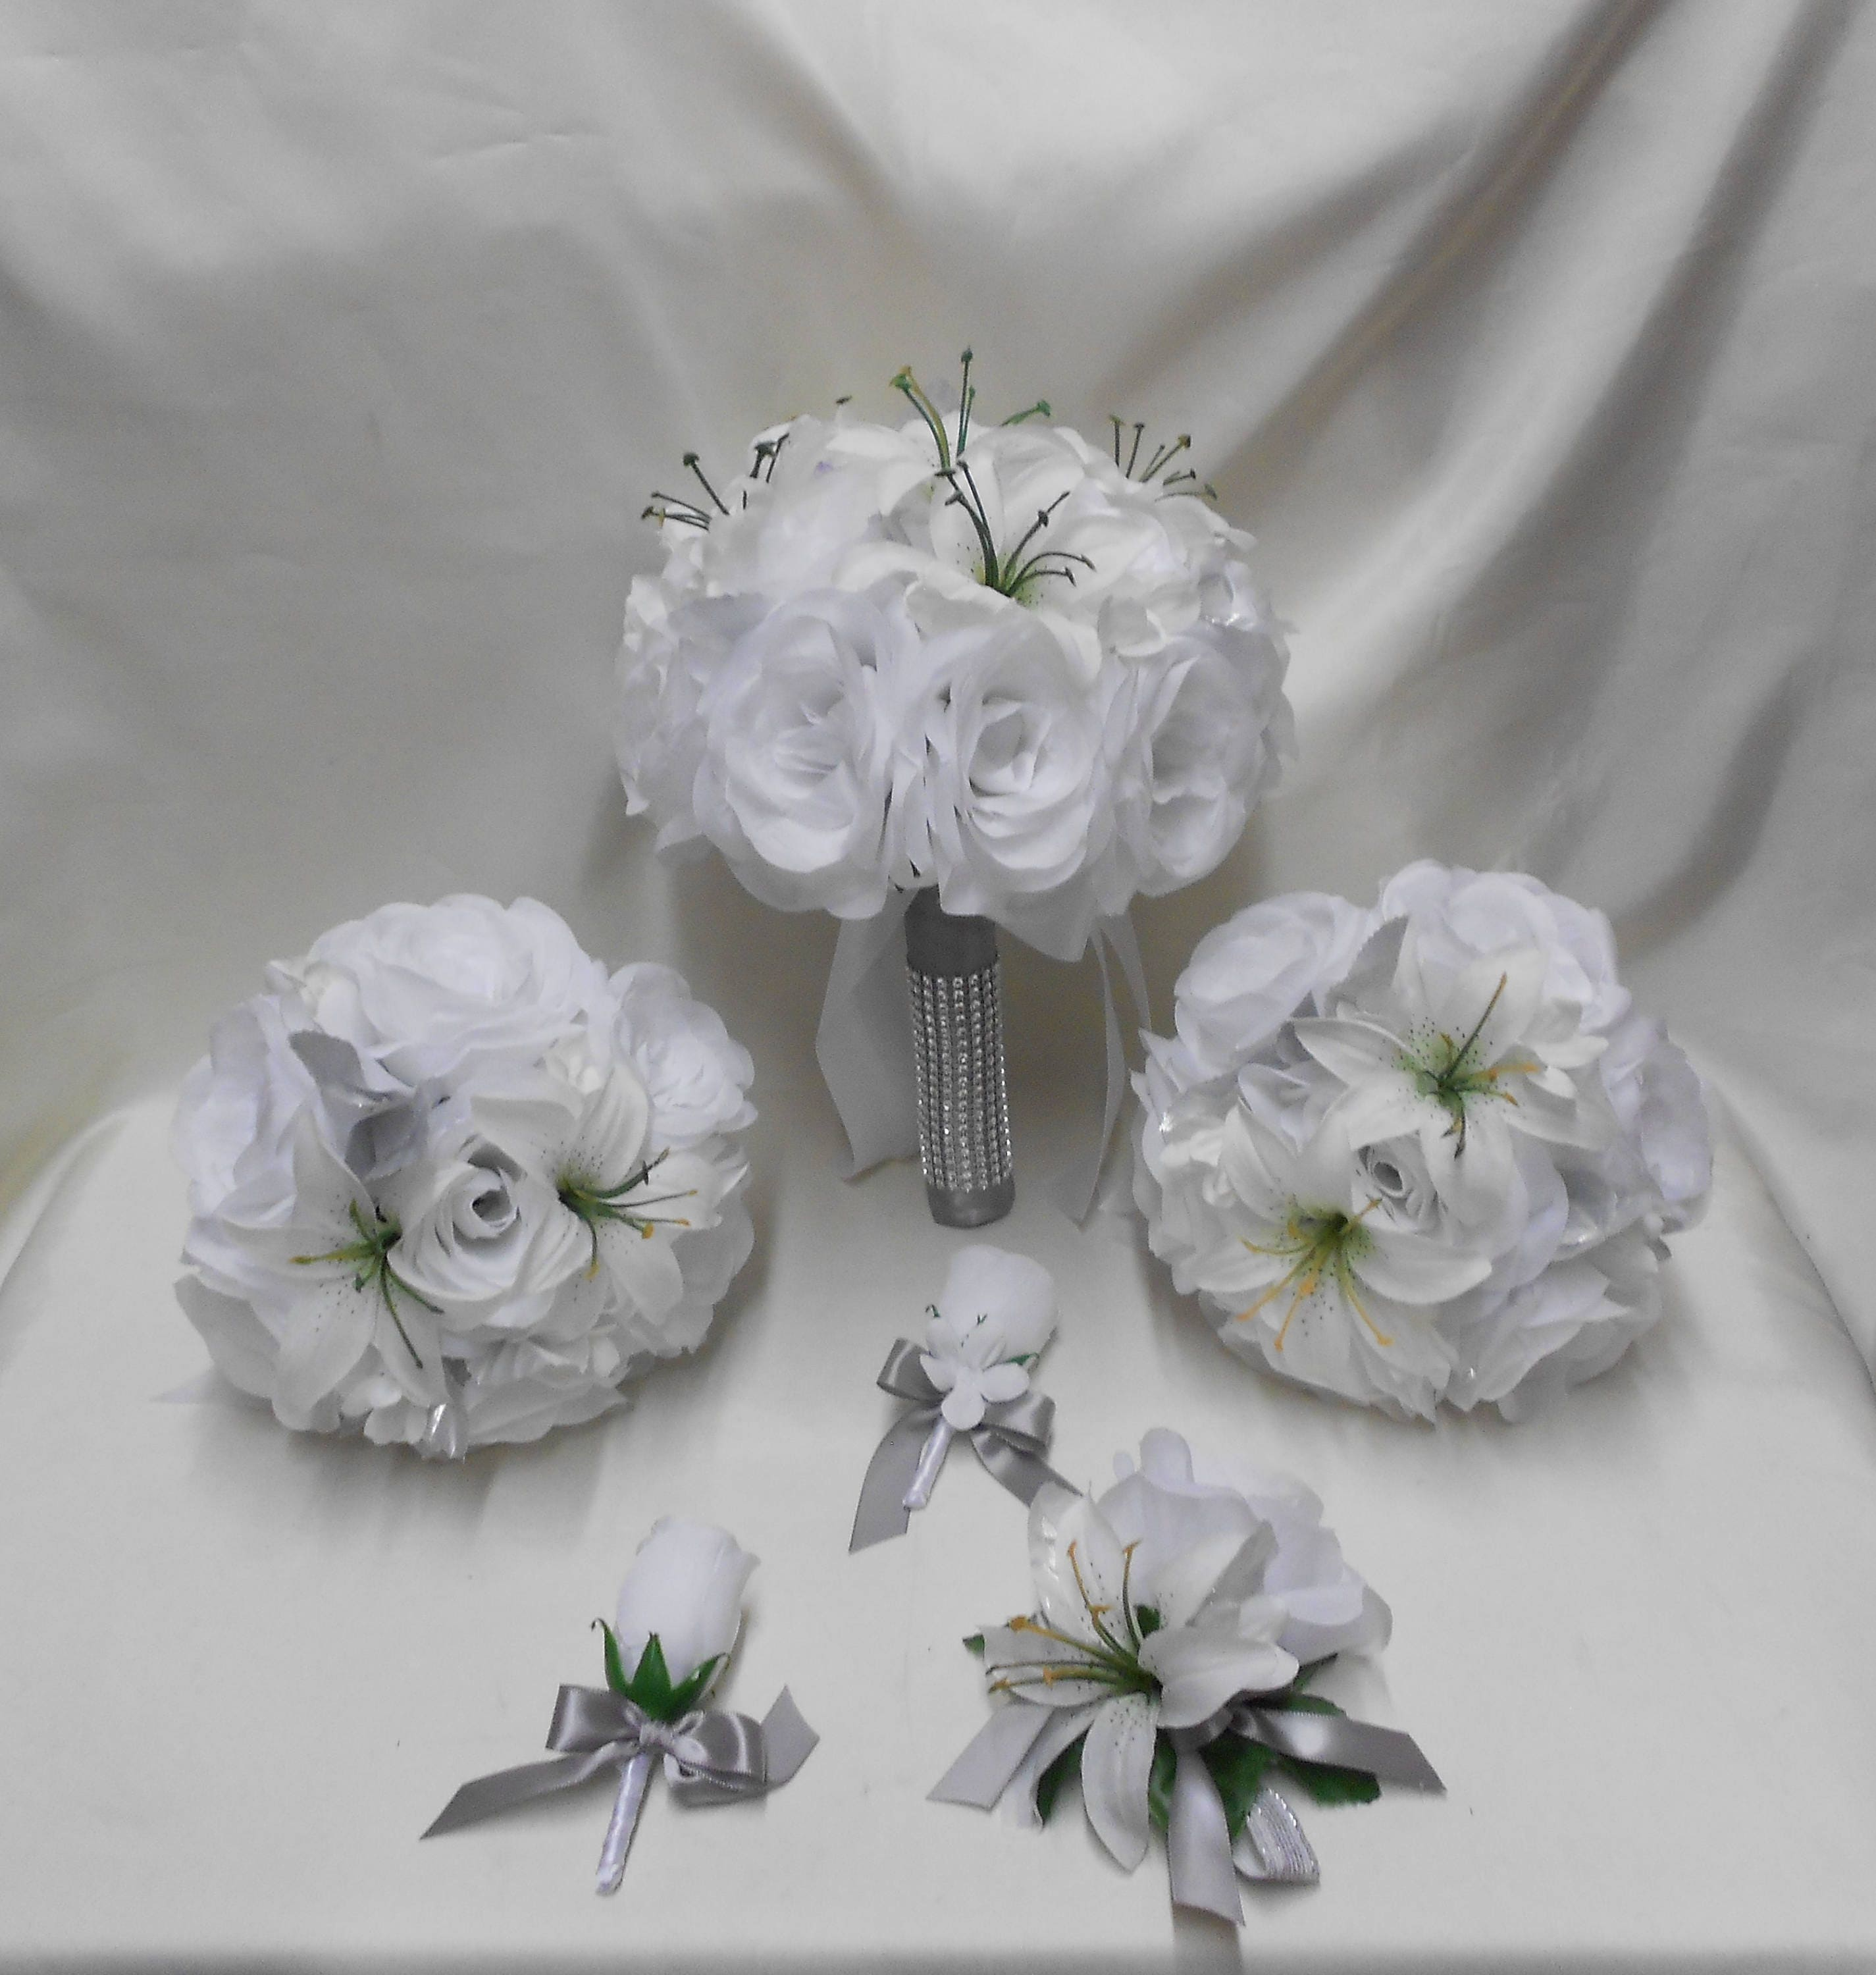 Wedding Silk Flower Bridal Bouquets 18 Pcs Package White Roses Etsy